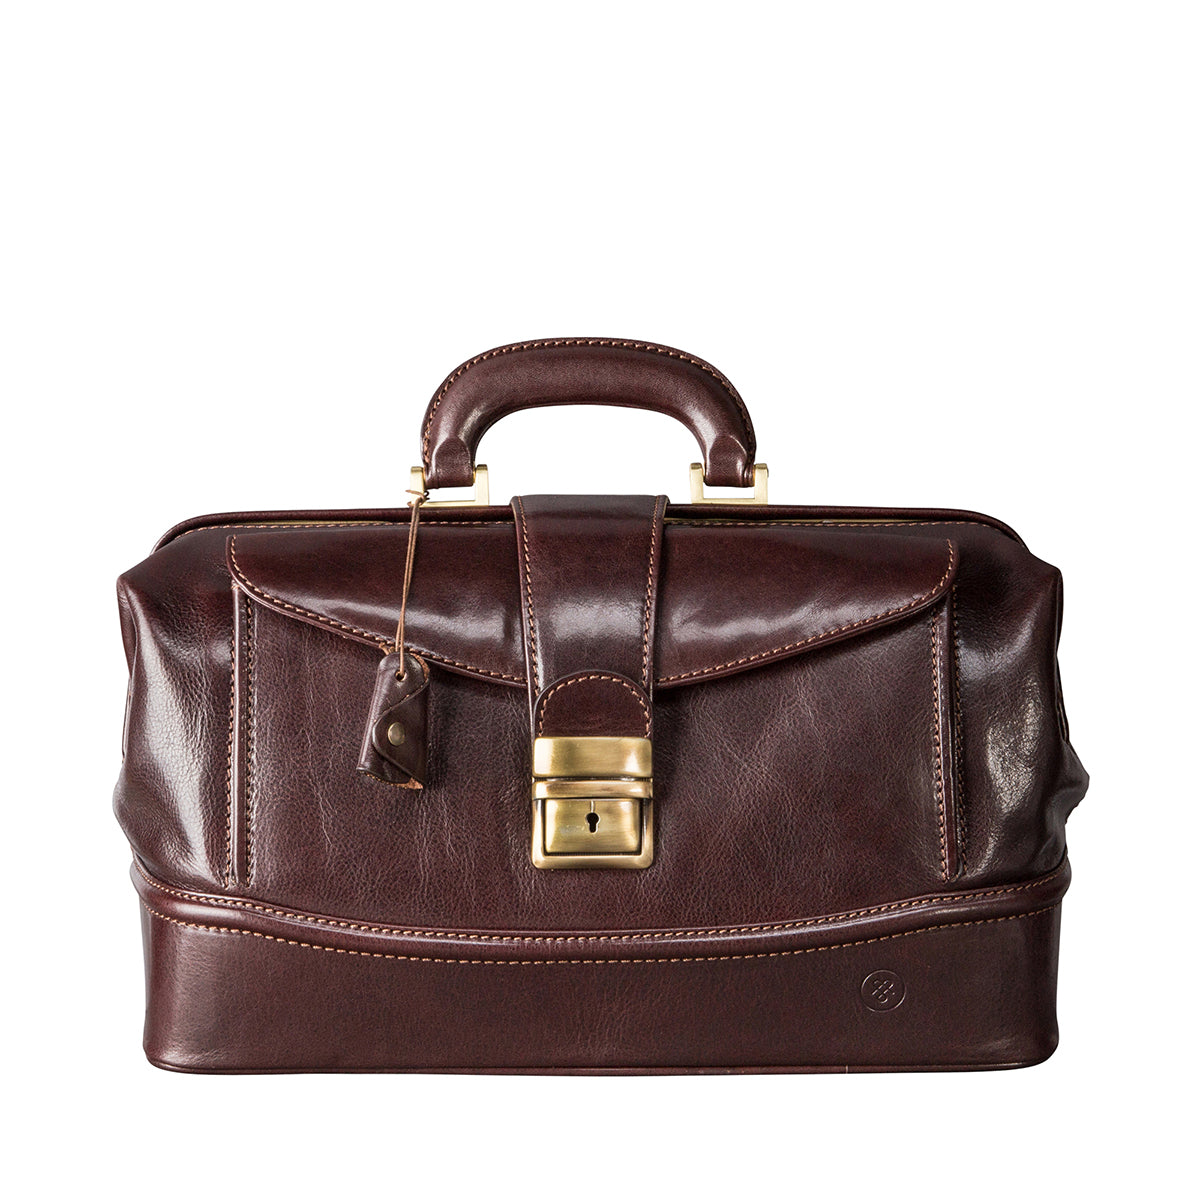 Image 1 of the 'Donnini' Dark Chocolate Veg-Tanned Leather Doctor's Bag